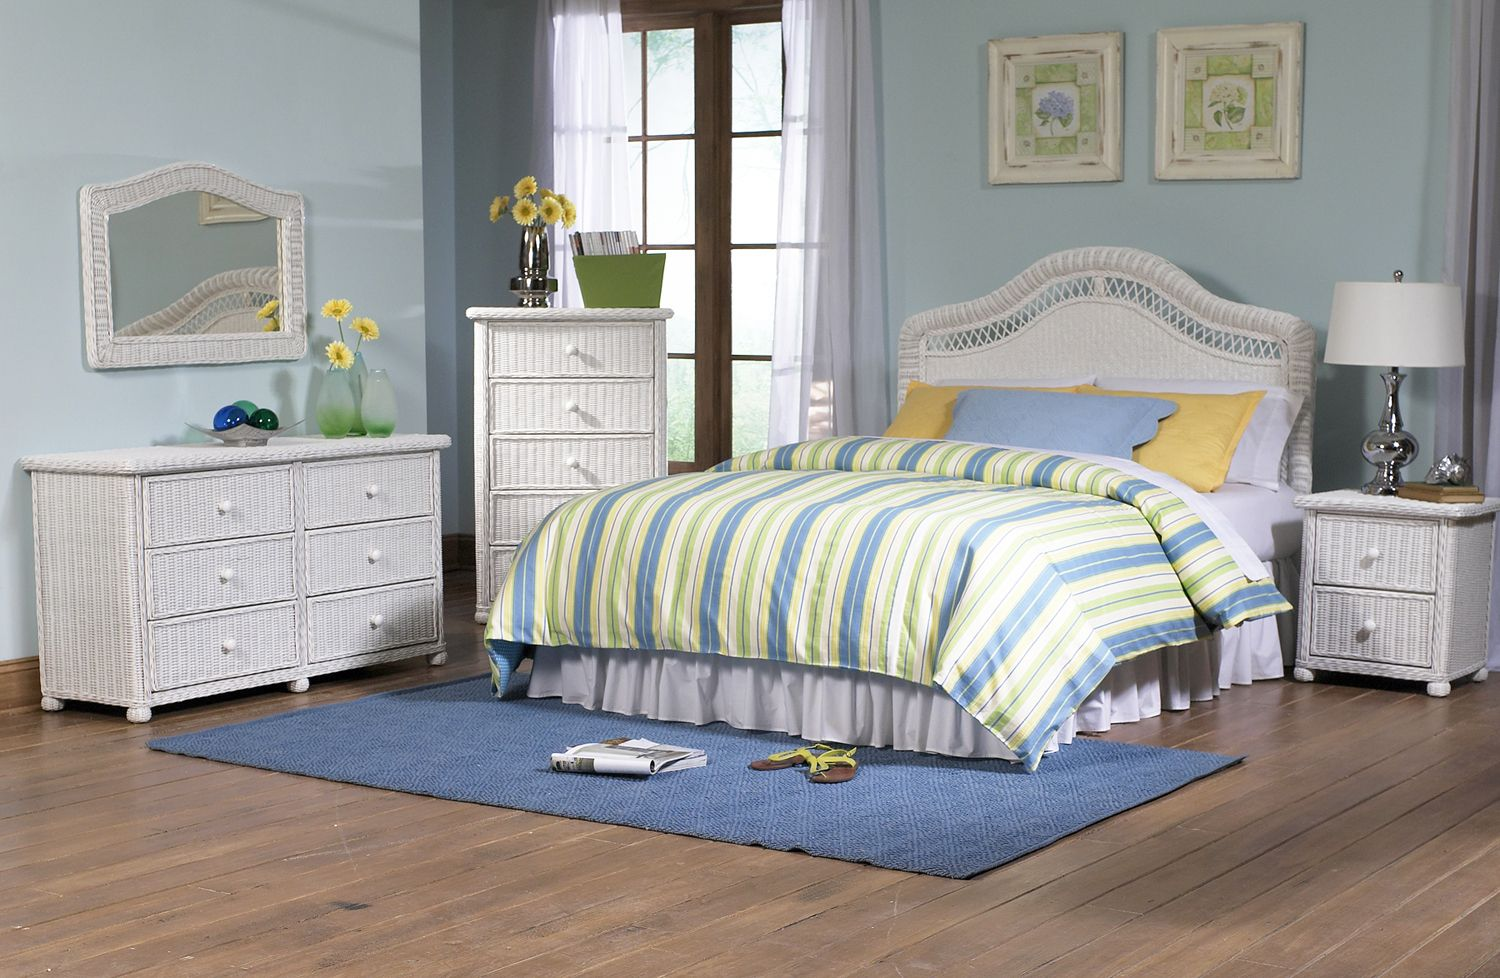 furniture bedroom sets bedroom decor master bedroom bedrooms bedroom